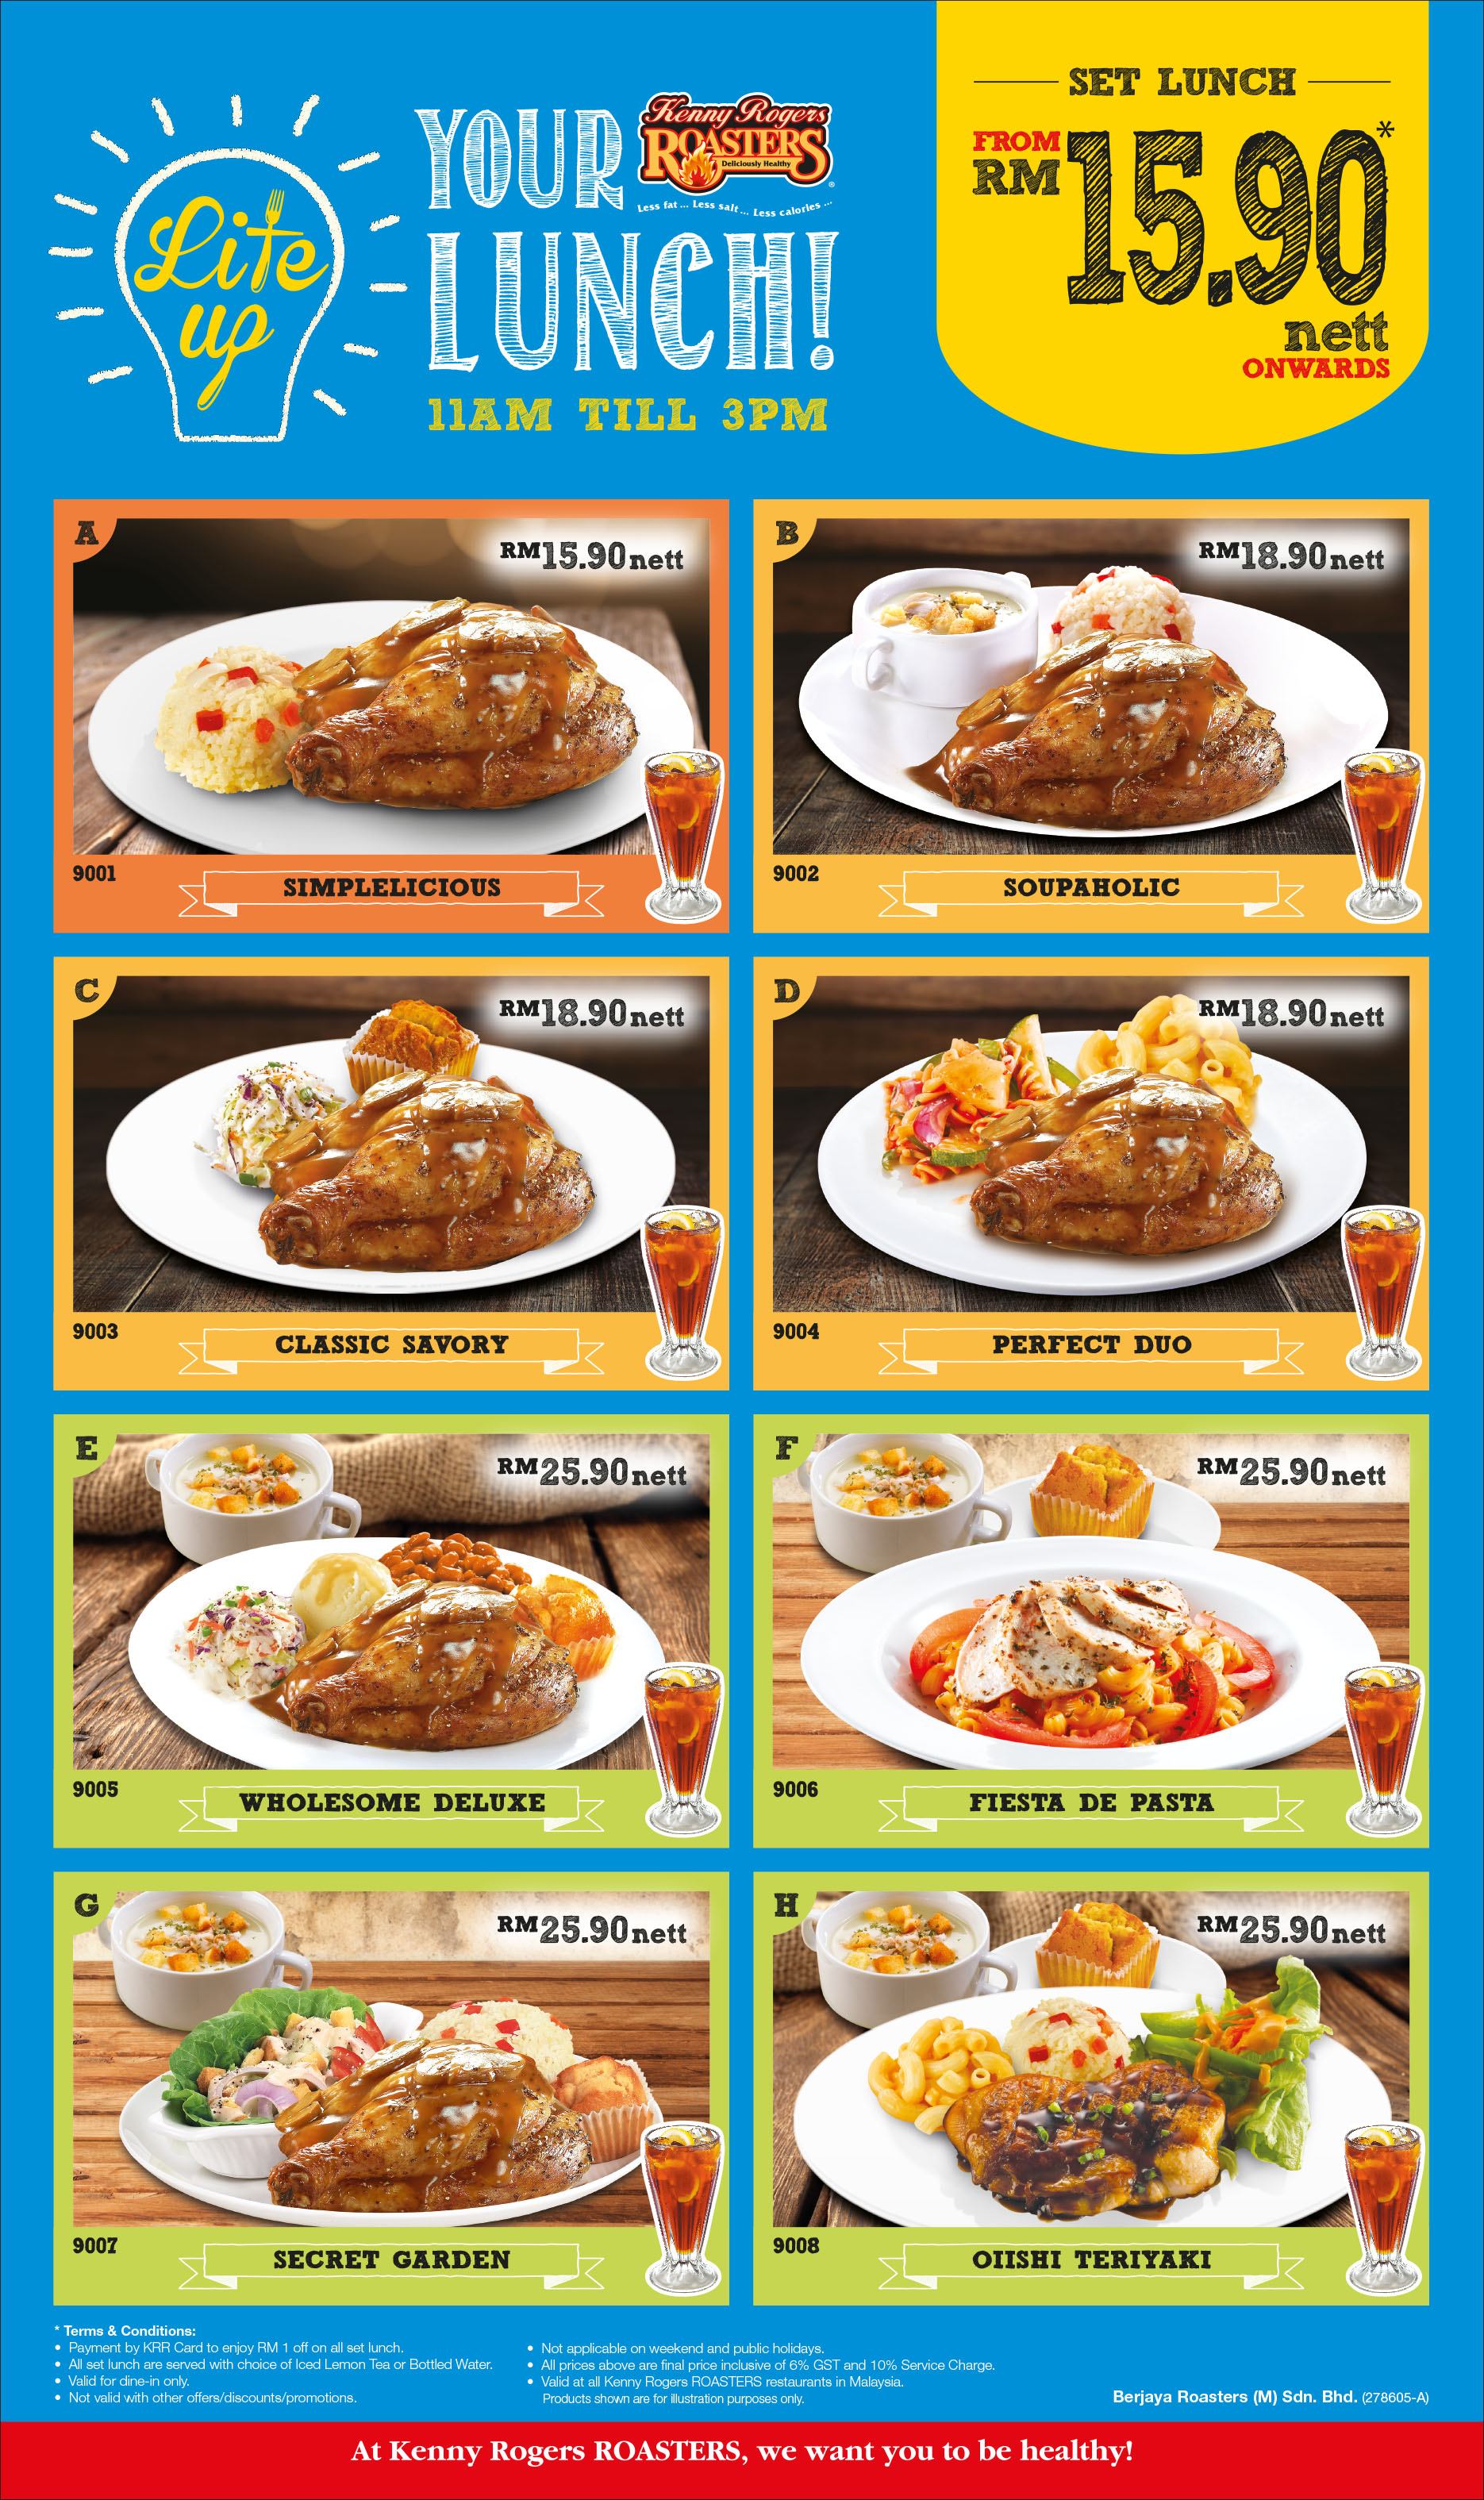 Semasa Lite Up Your Lunch At Kenny Rogers Roasters Galaksi Media